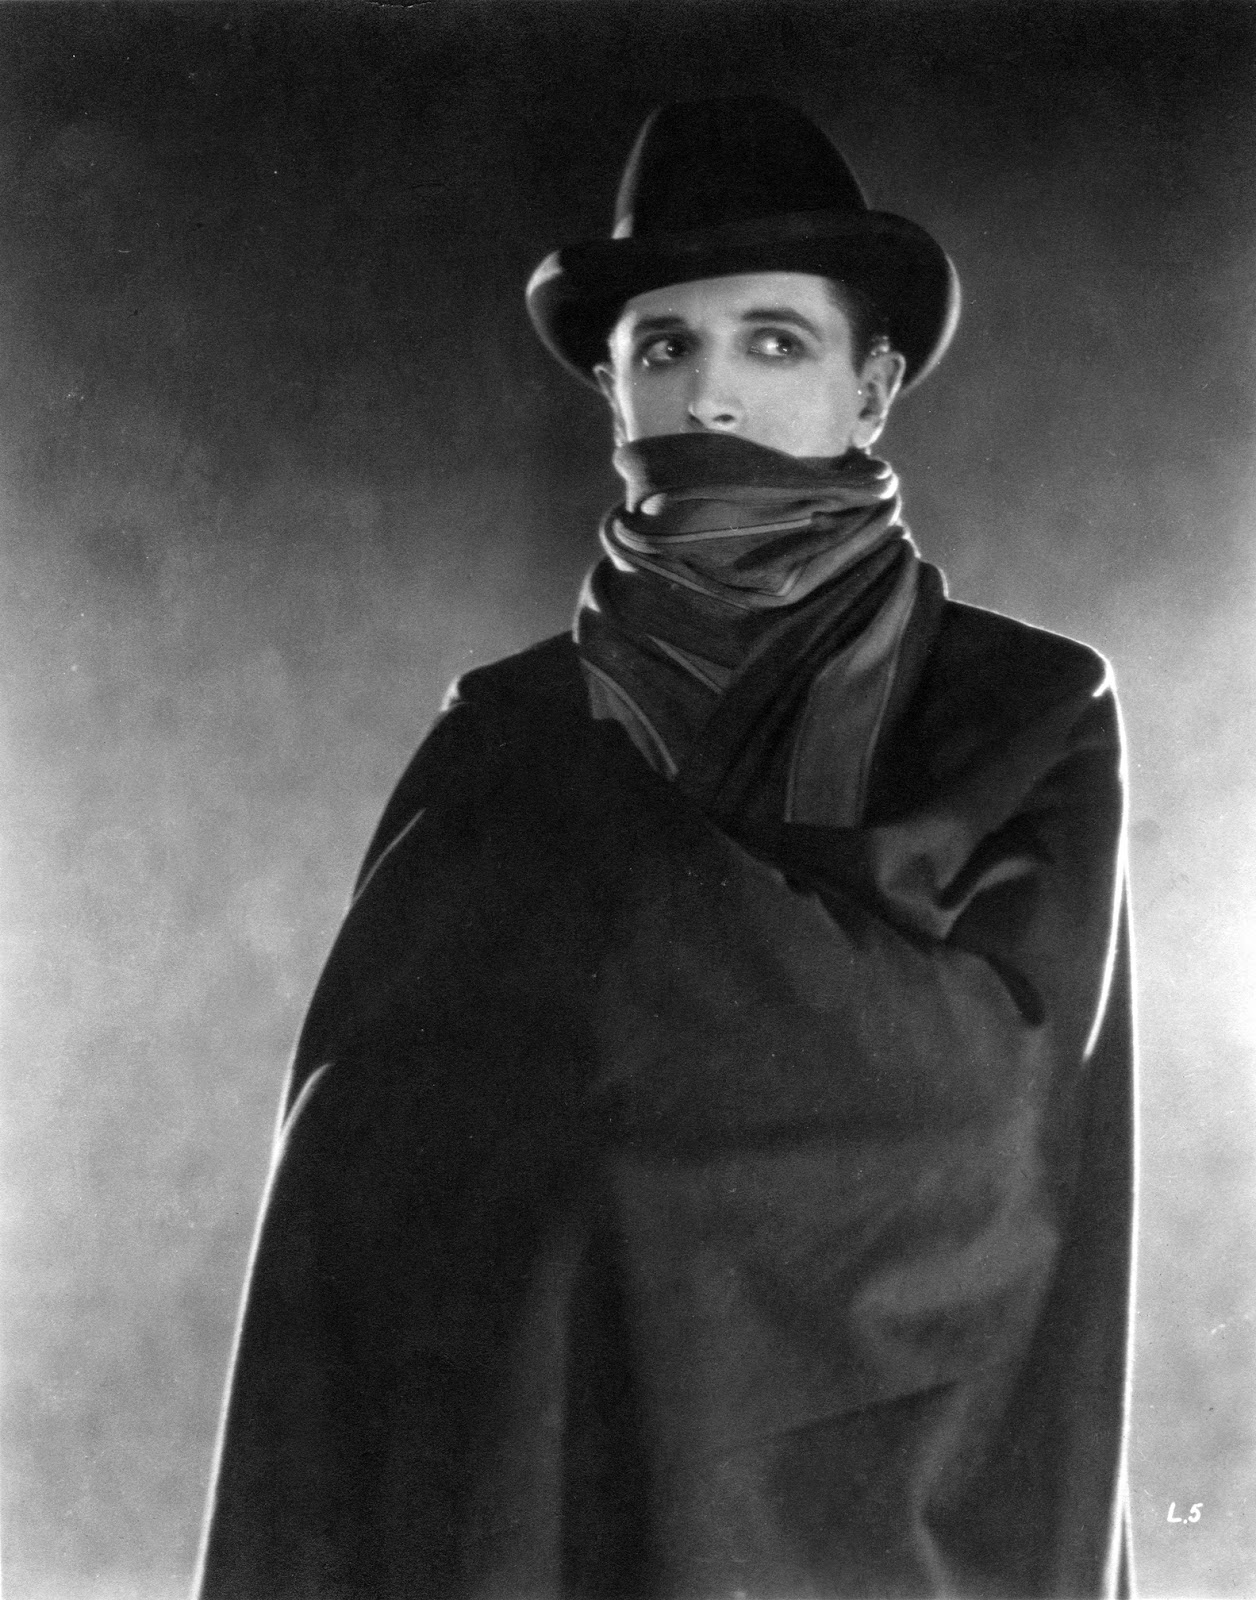 The Lodger Starring Ivor Novello as Jack The Ripper